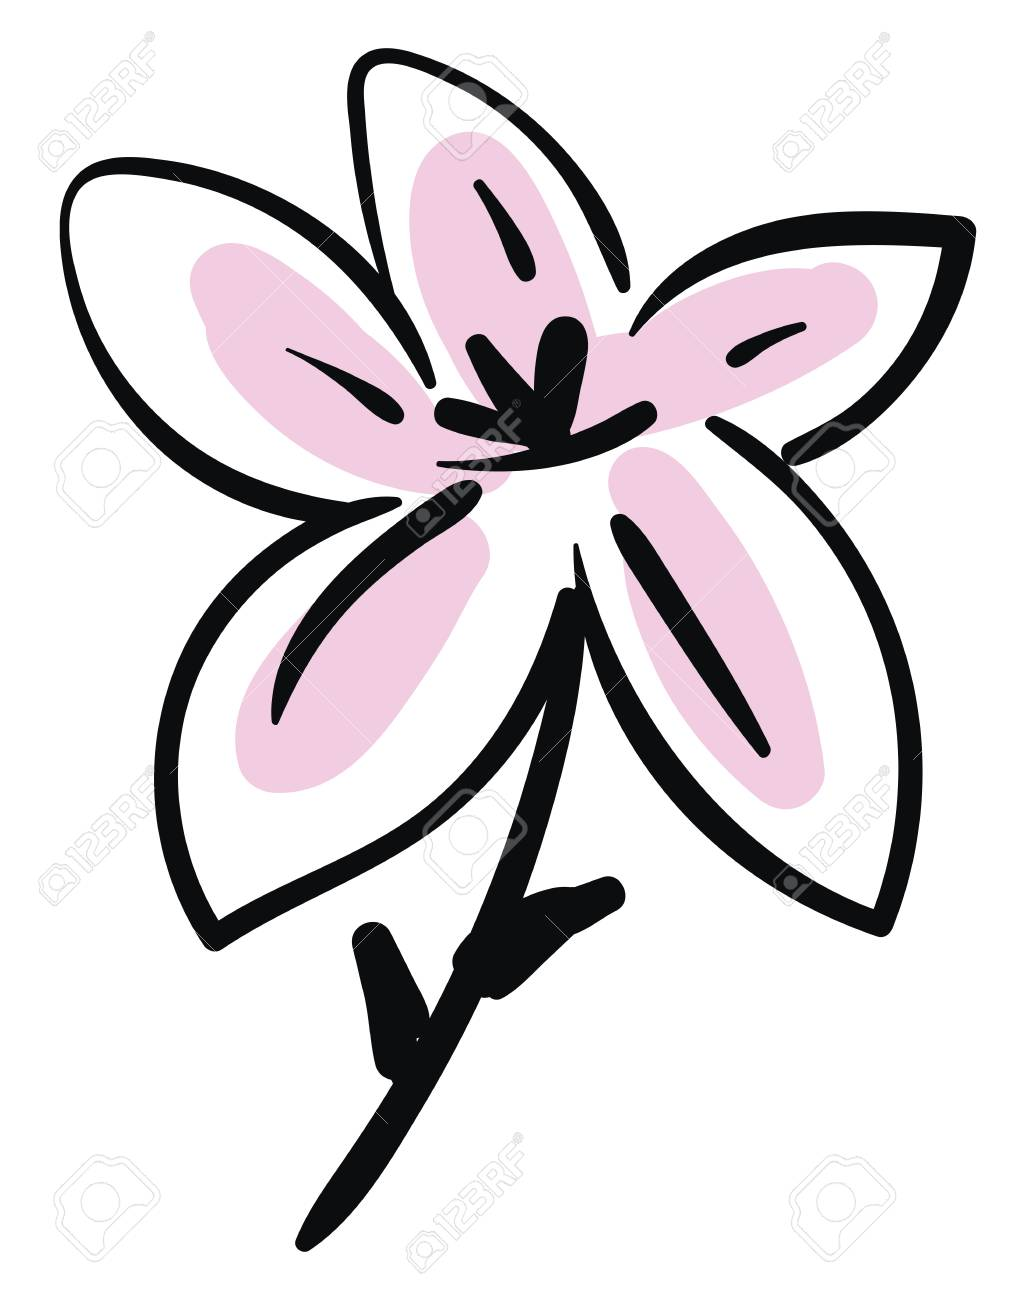 Simple Sketch Of A Black And Pink Lily Flower Vector Illustration Royalty Free Cliparts Vectors And Stock Illustration Image 123462346